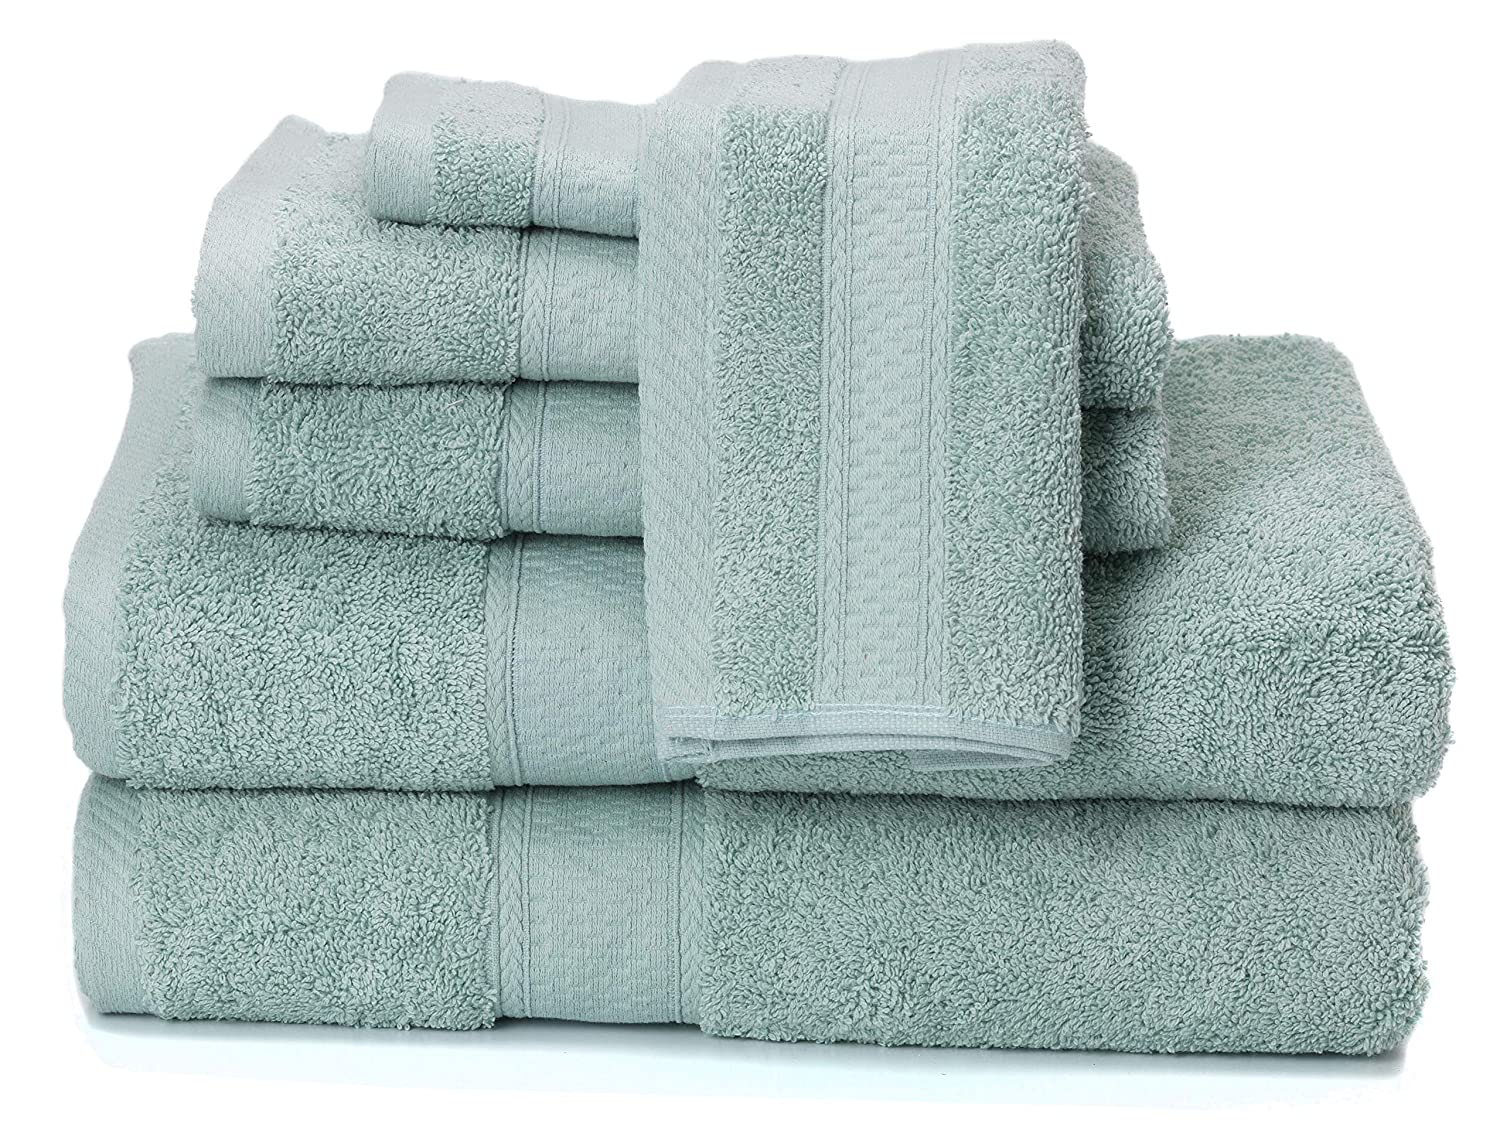 Natural White Terry Towels by SJL SYNCHKG118337 Premium Bamboo Cotton 6 Piece Towel Set Ultra Absorbent and Eco-Friendly